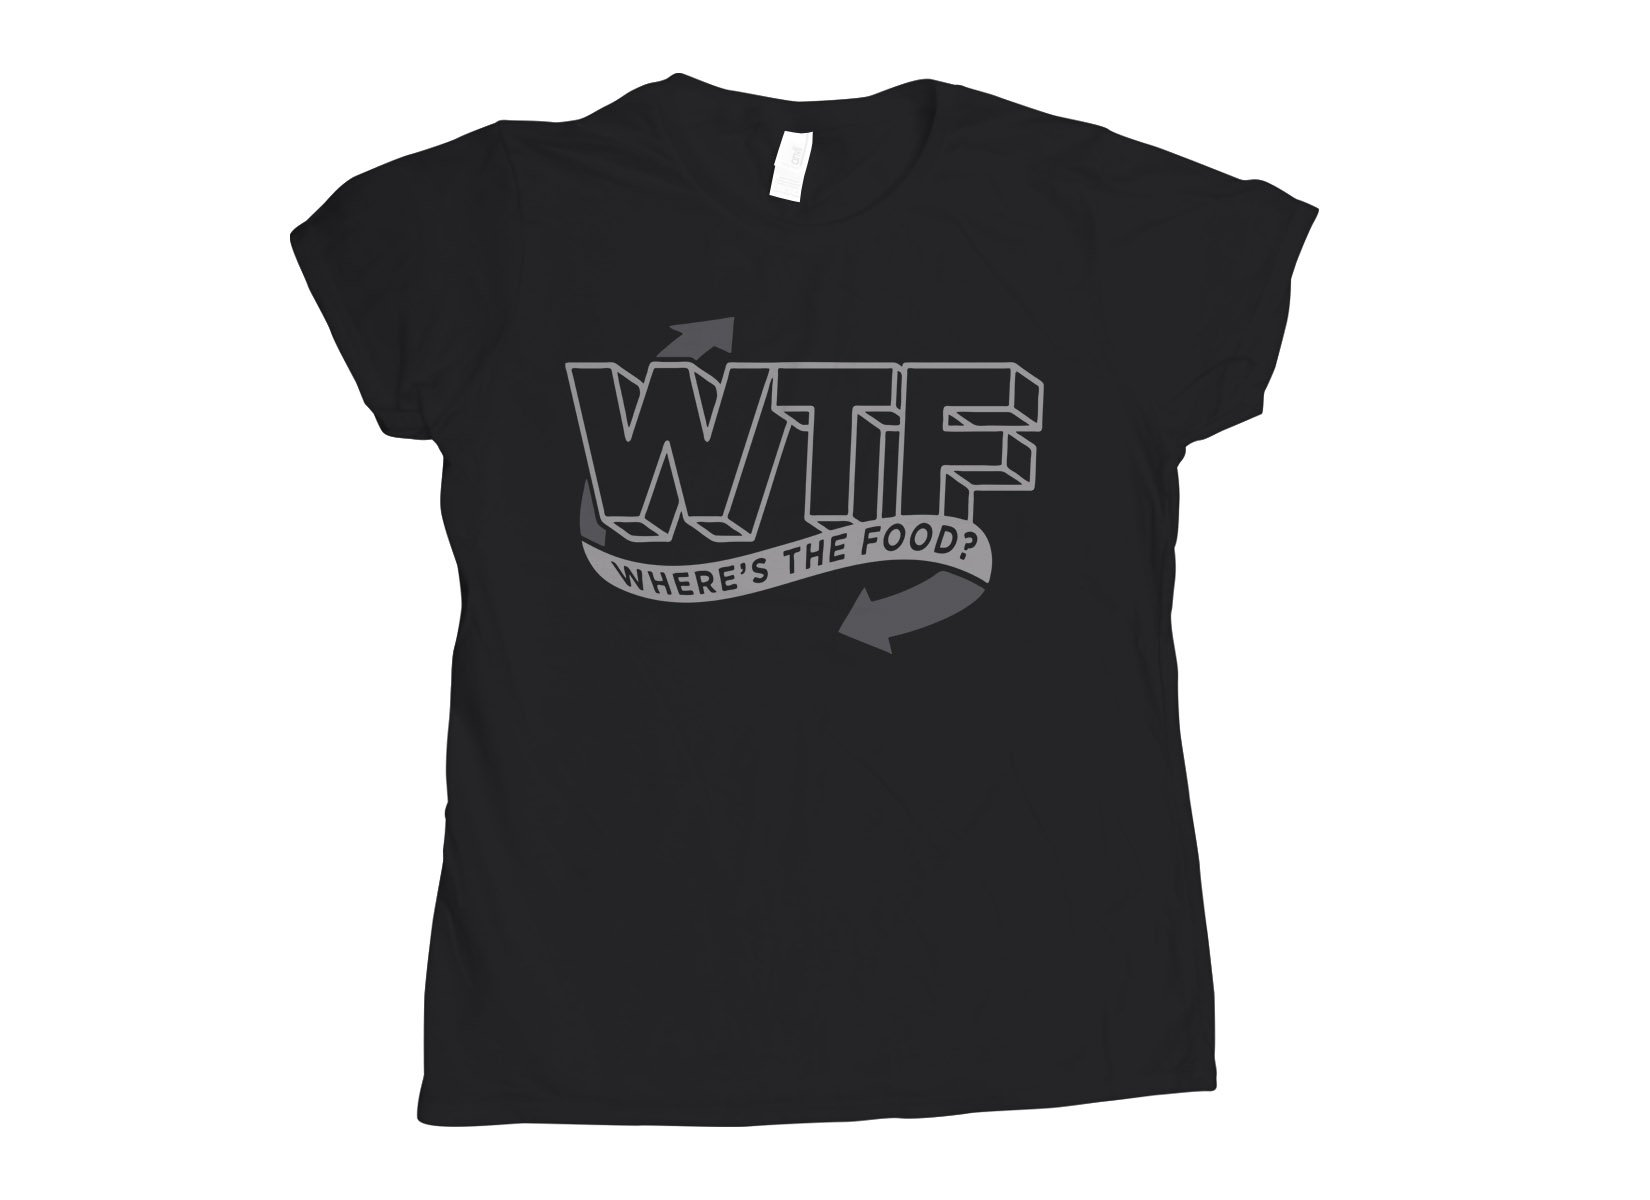 Where's The Food? on Womens T-Shirt